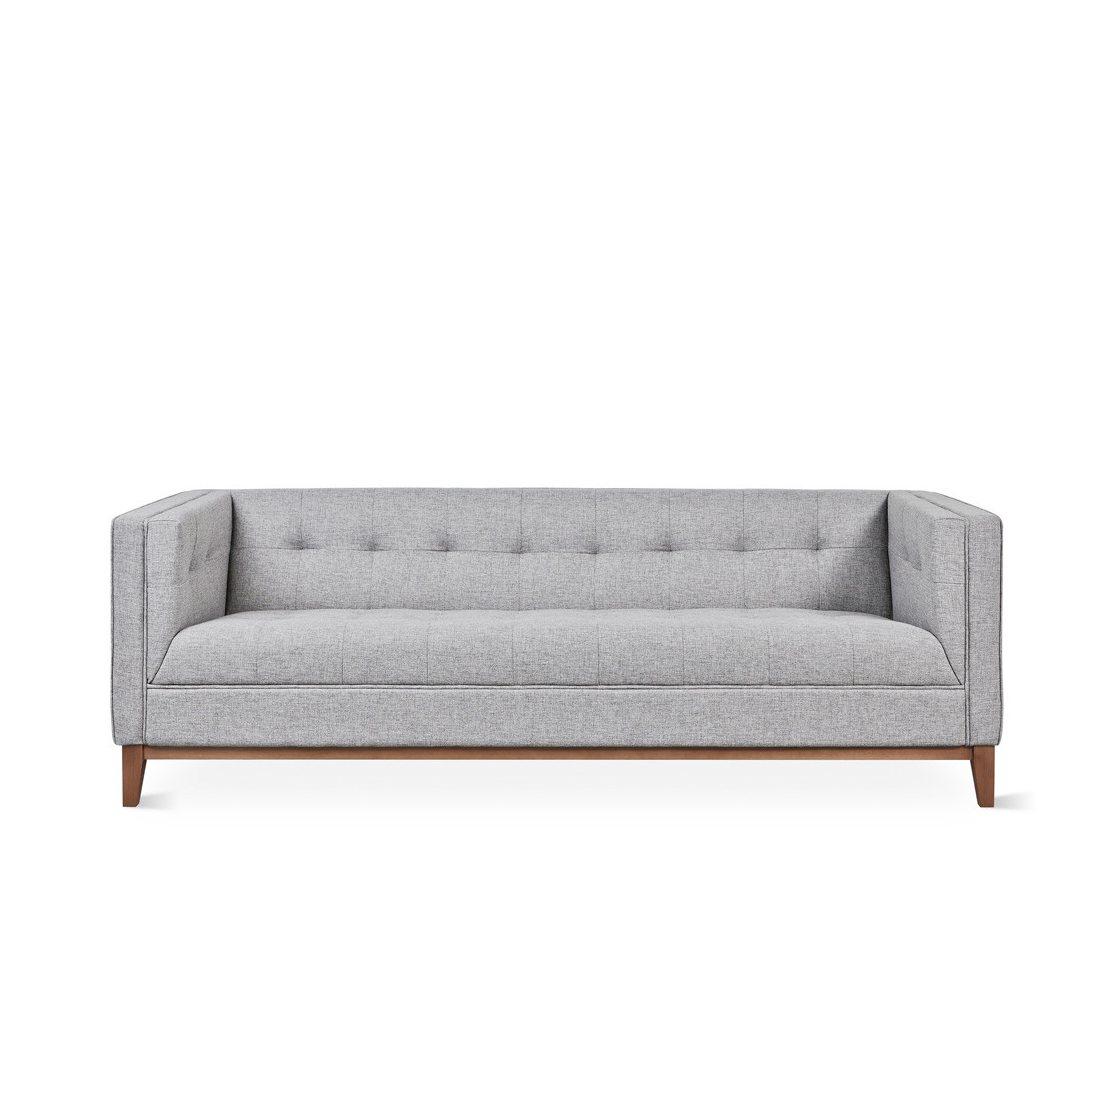 Atwood Sofa By Gus Modern Up Interiors